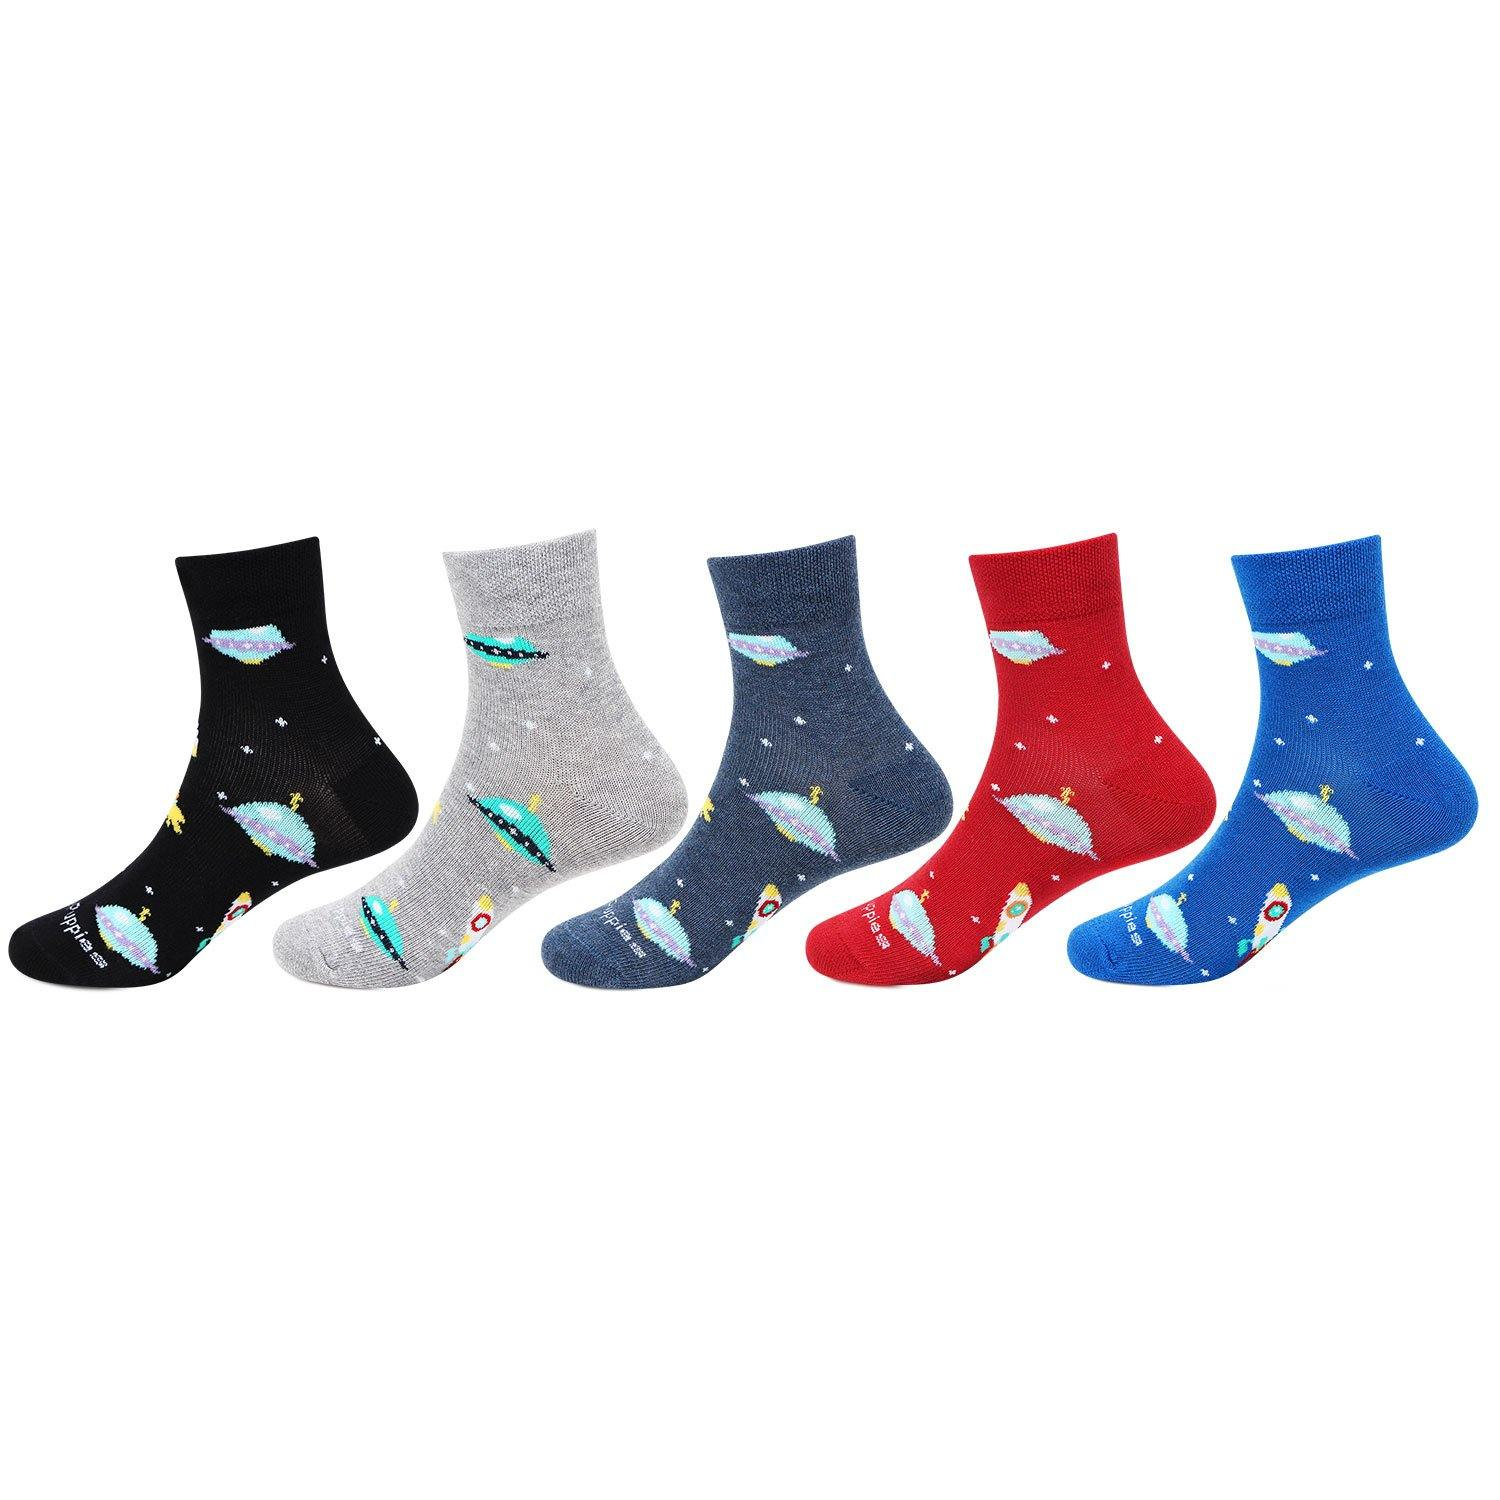 Hush Puppies Funky Rocket - Prints Cotton Ankle Socks For Kids - Pack Of 5